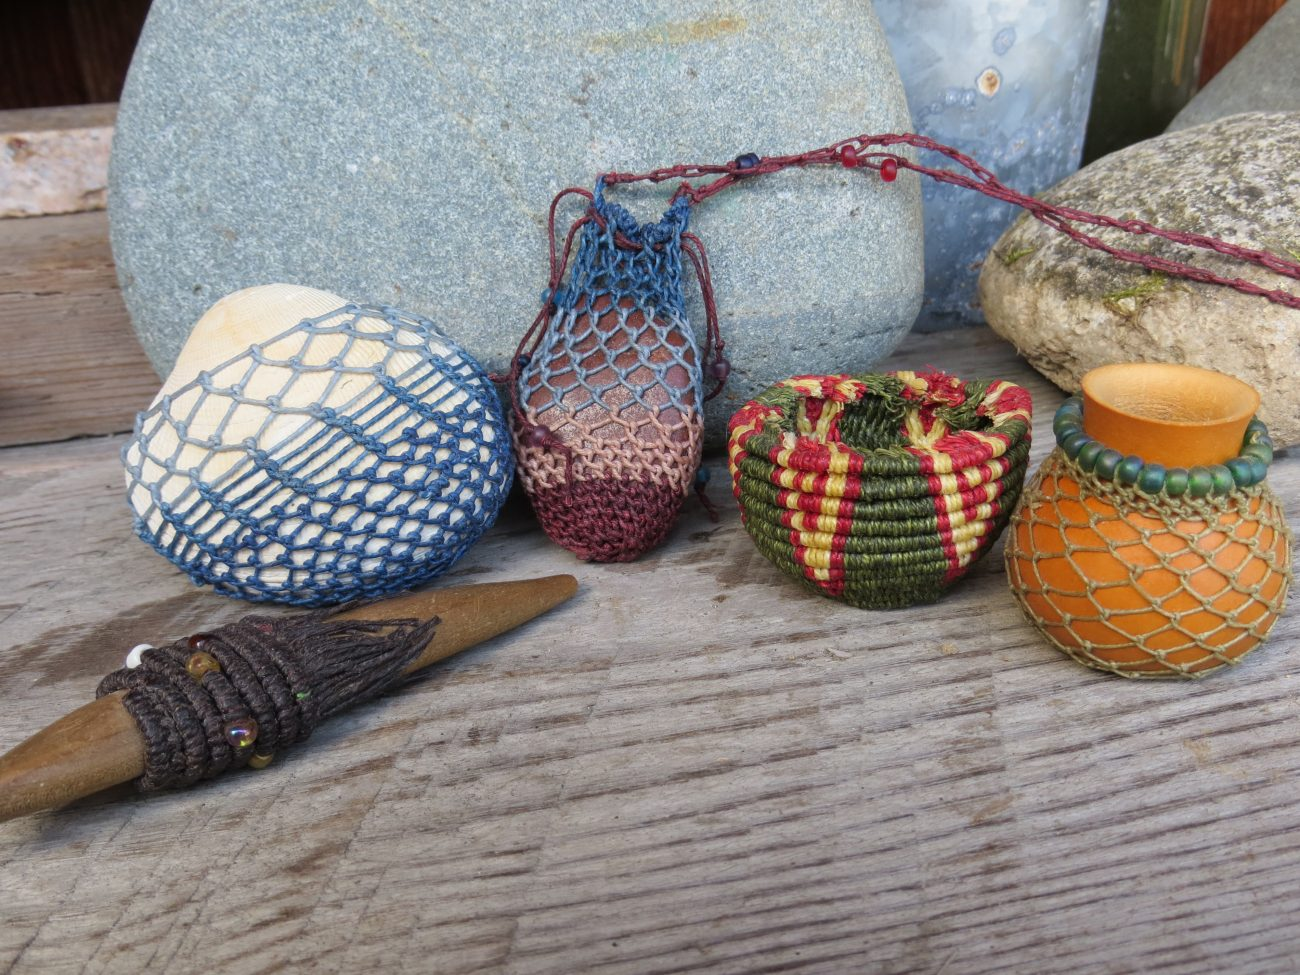 Small Scale Basketry